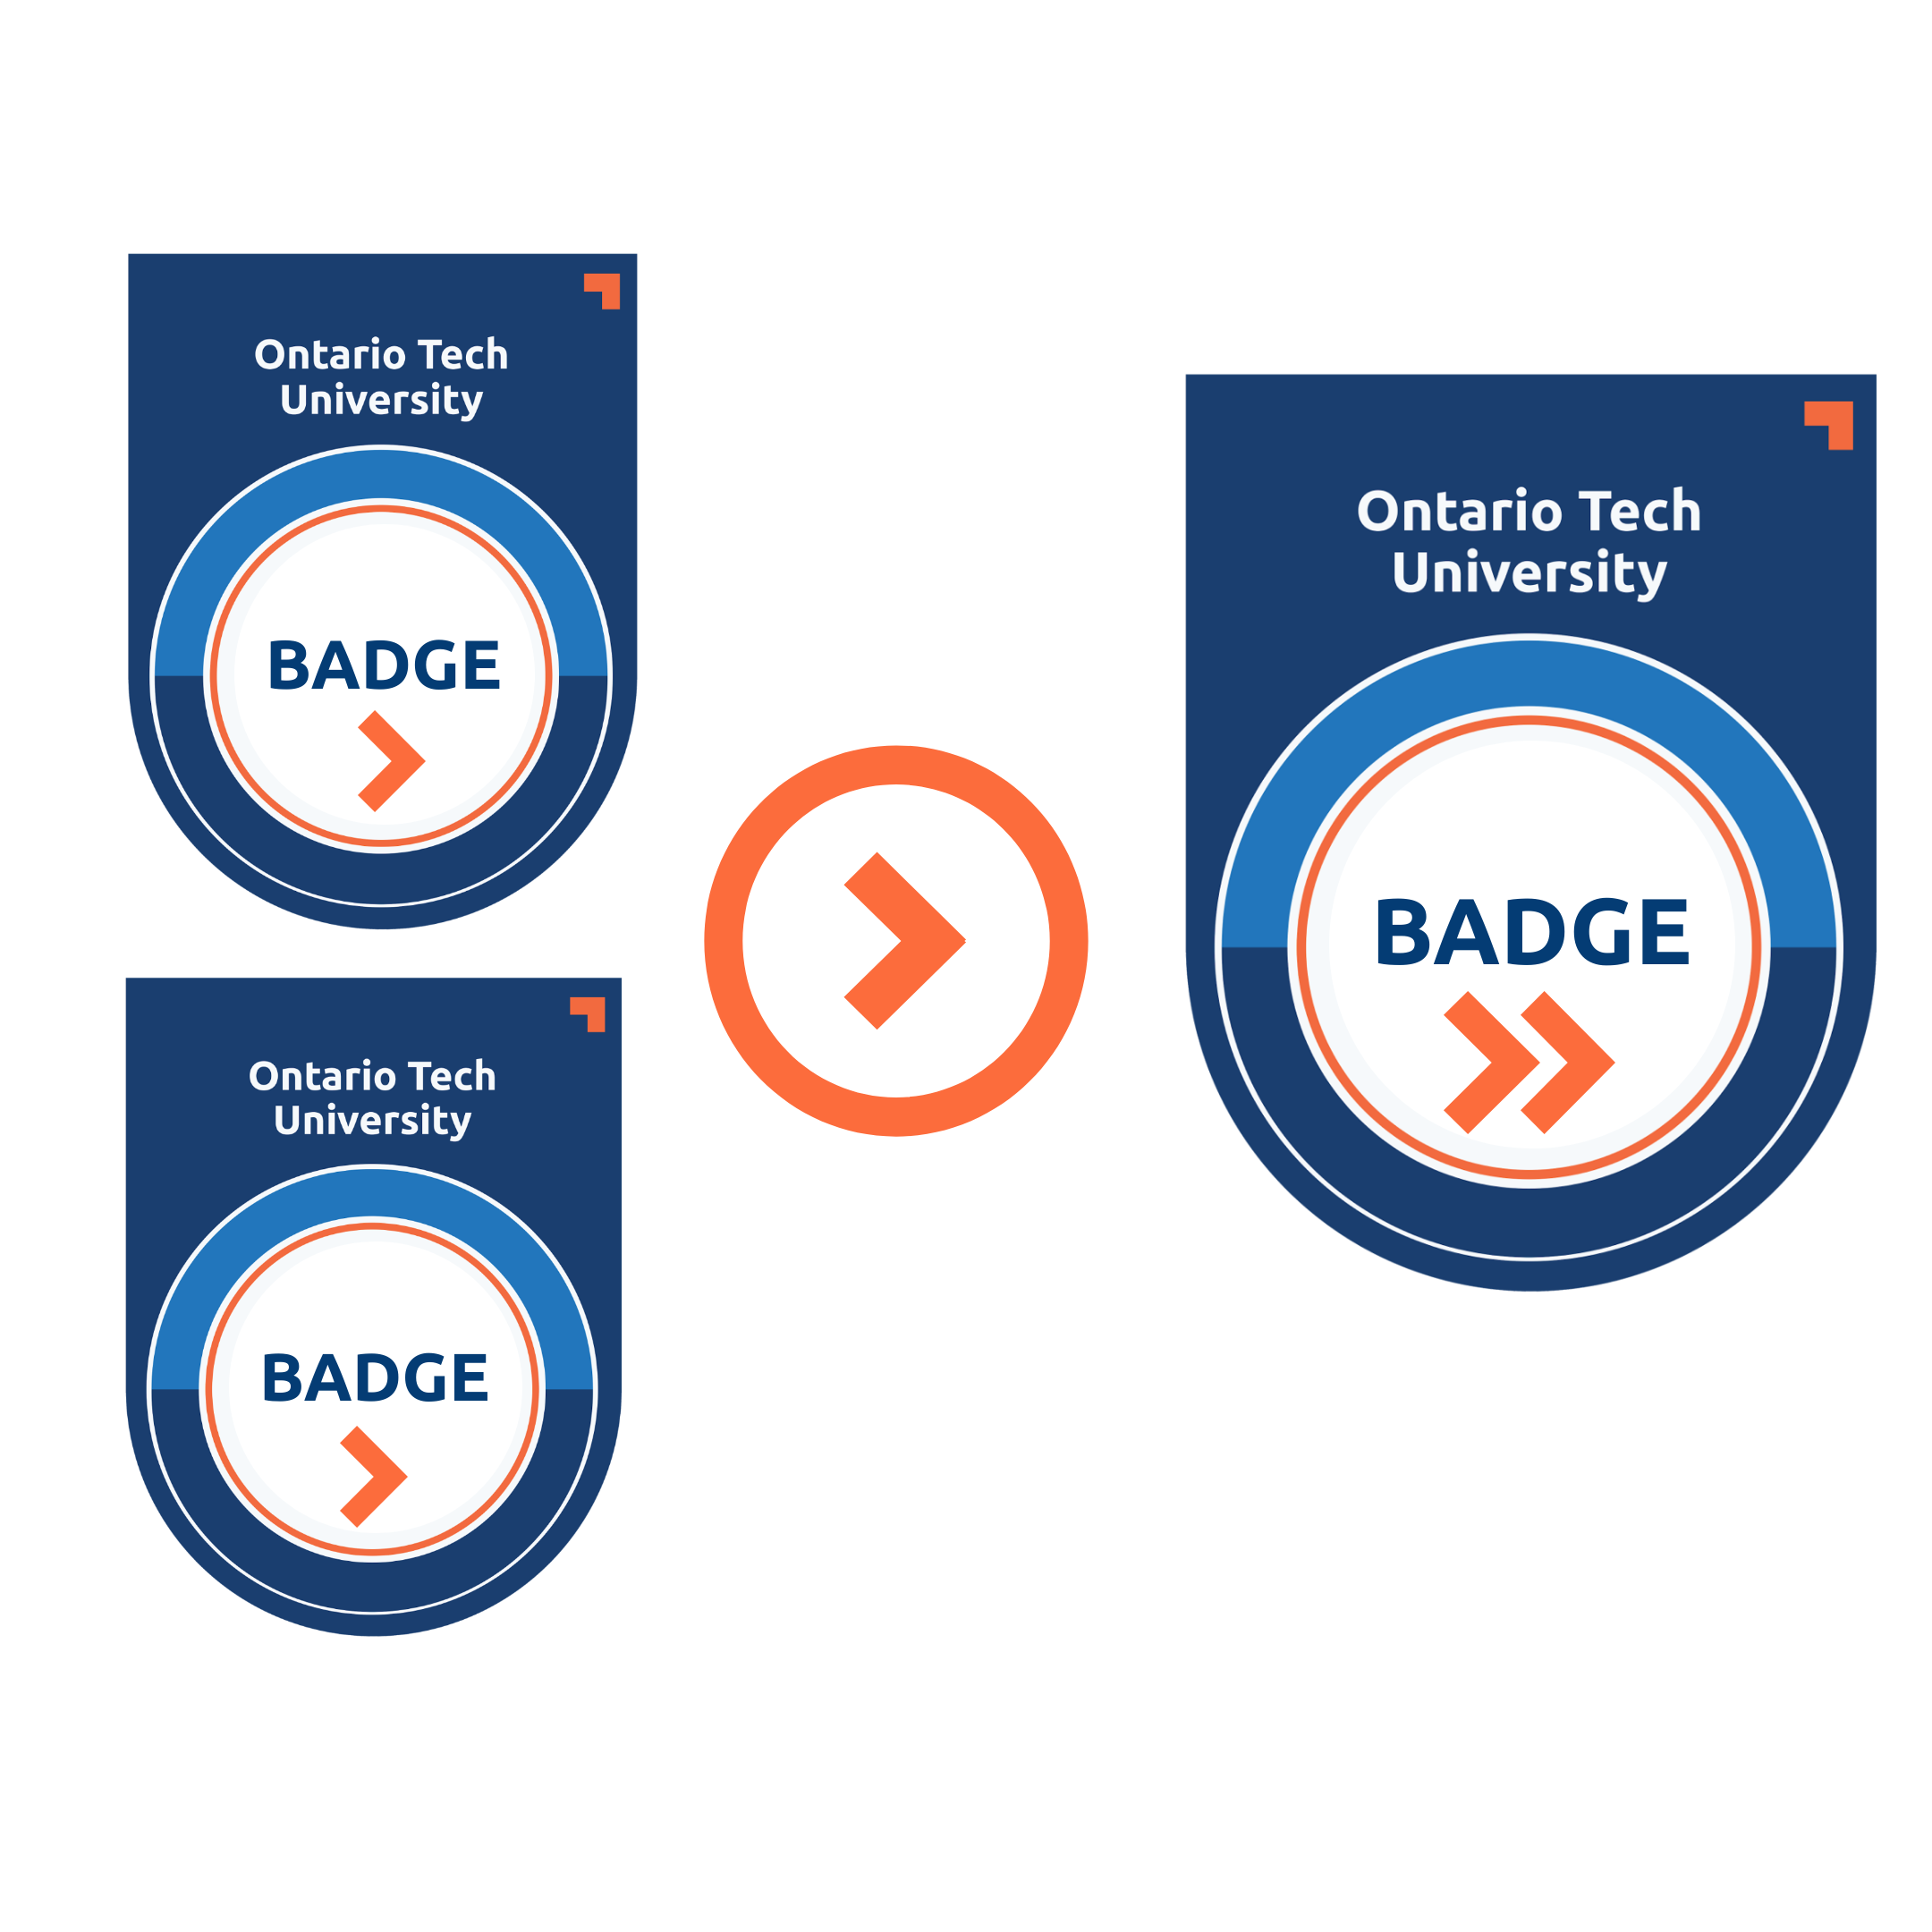 An illustration of two level-one badges, stacking toward a level 2 badge